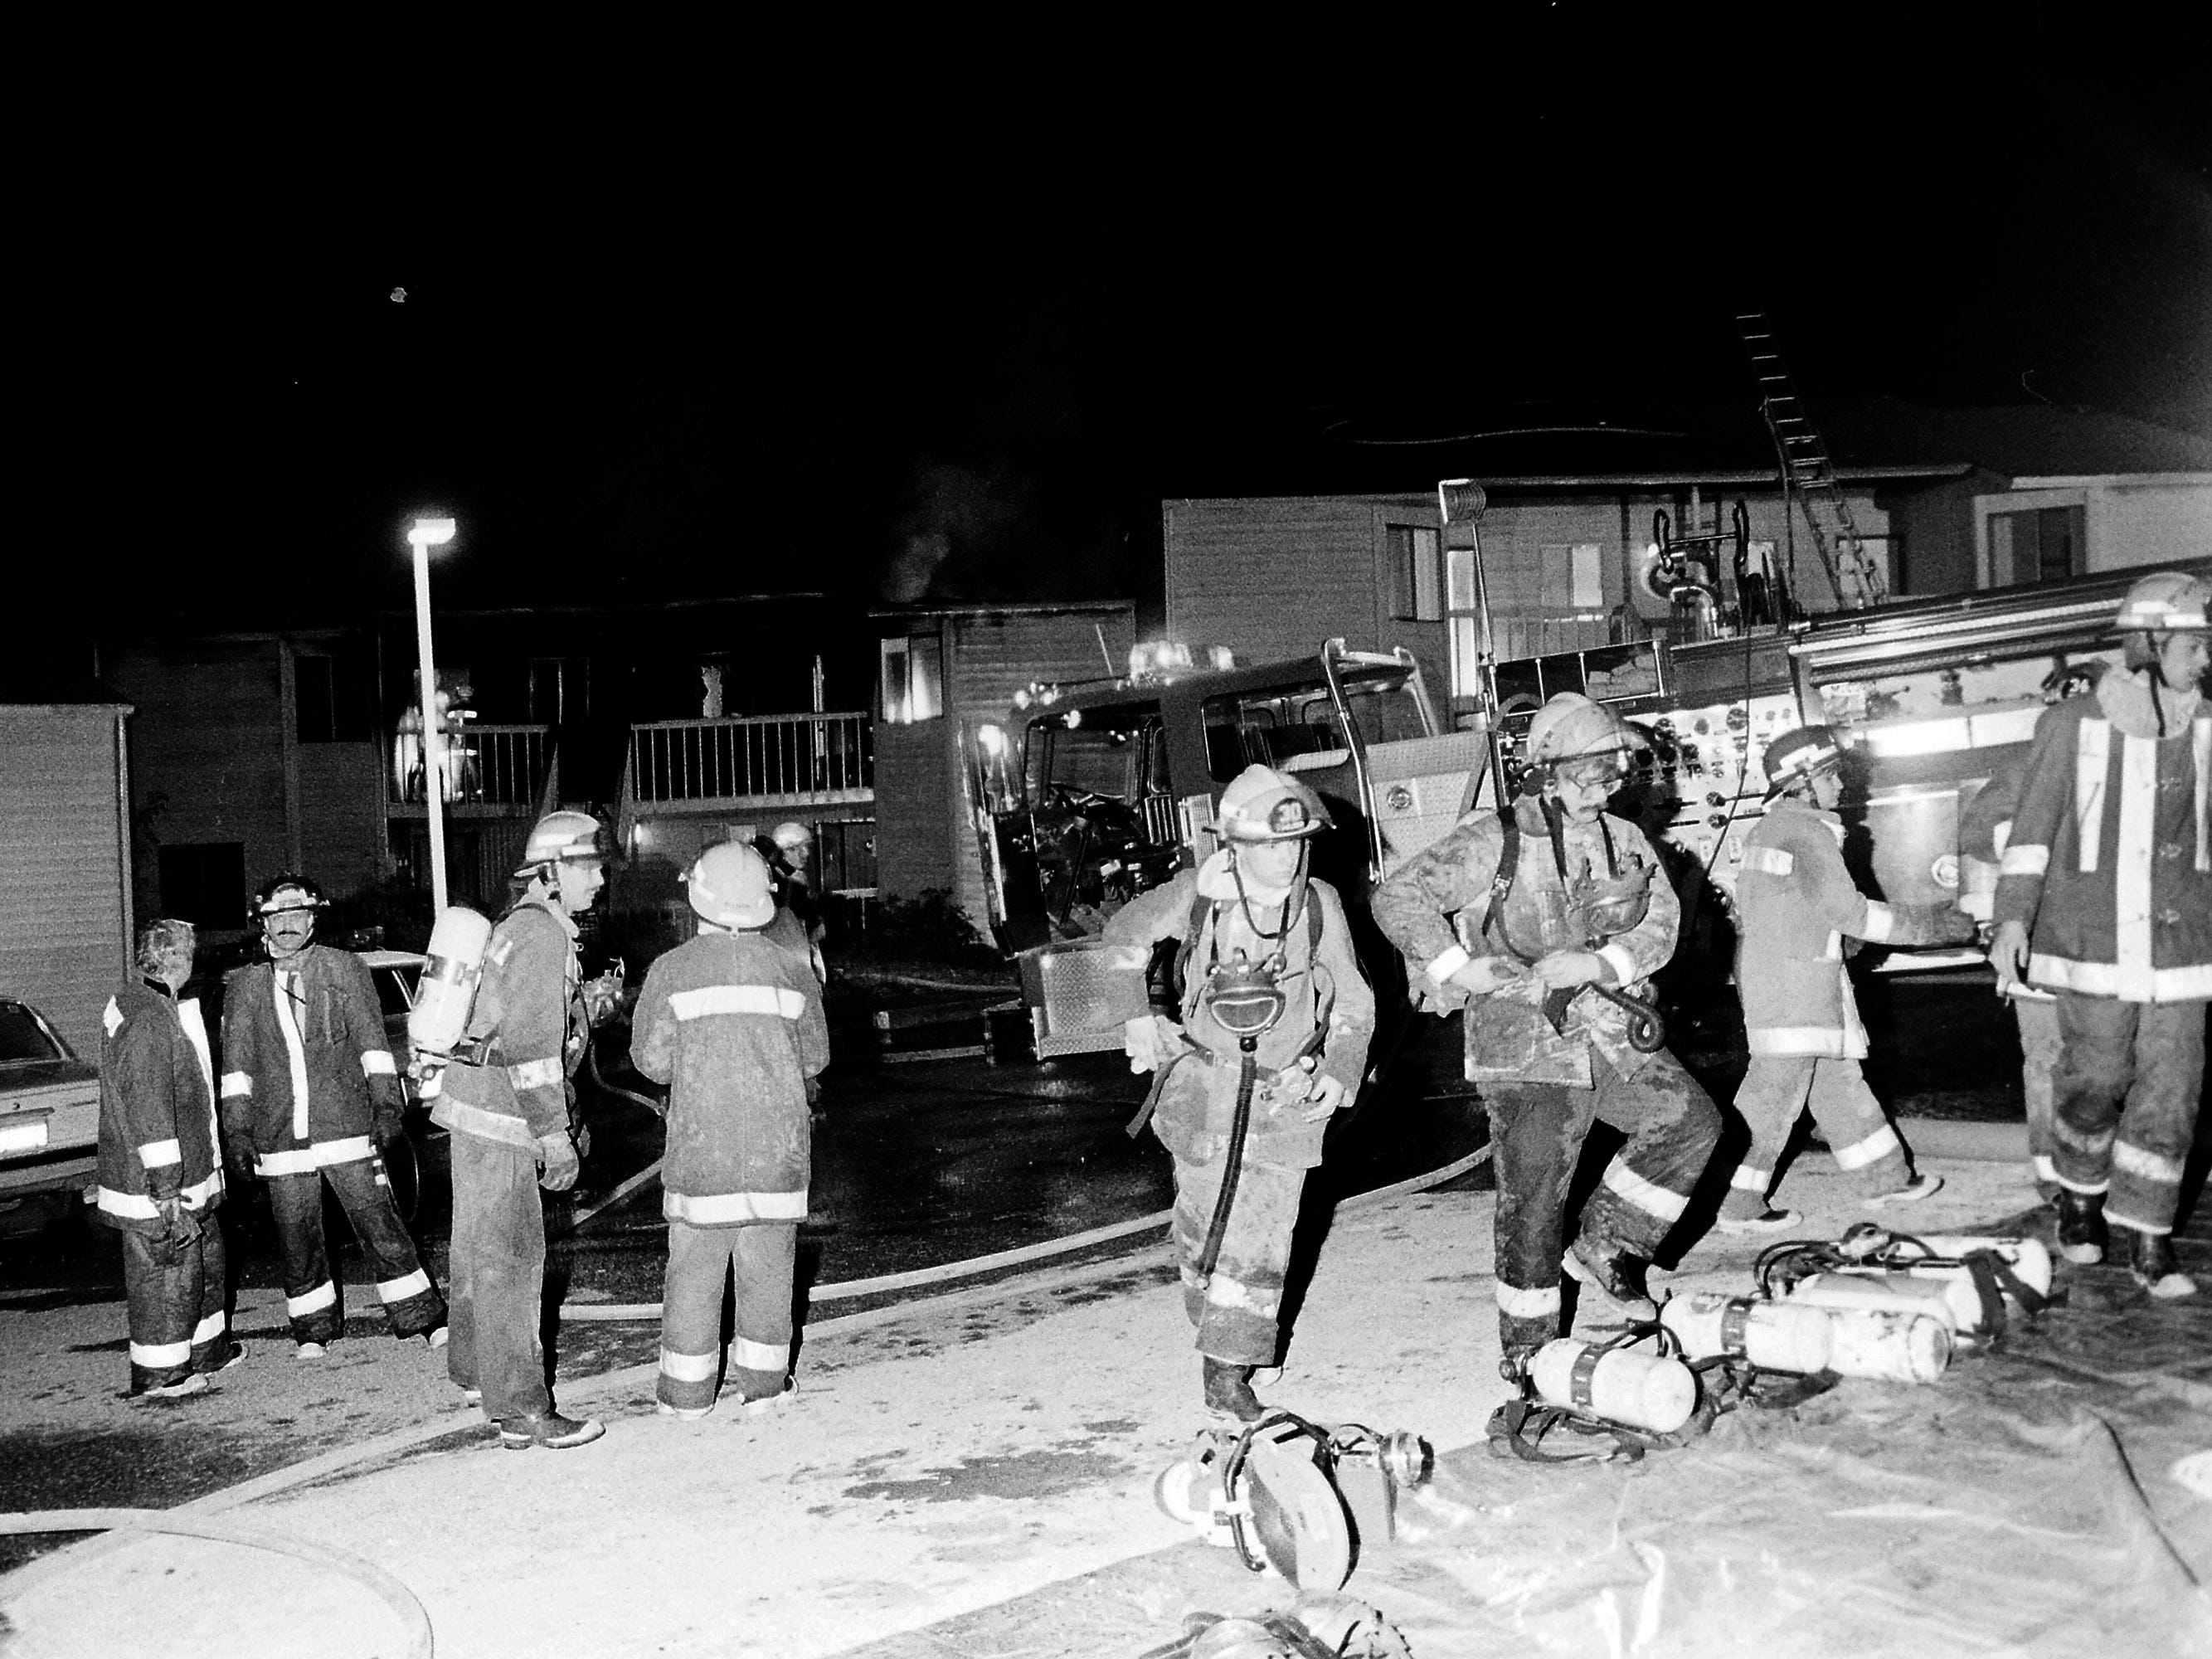 04/24/87